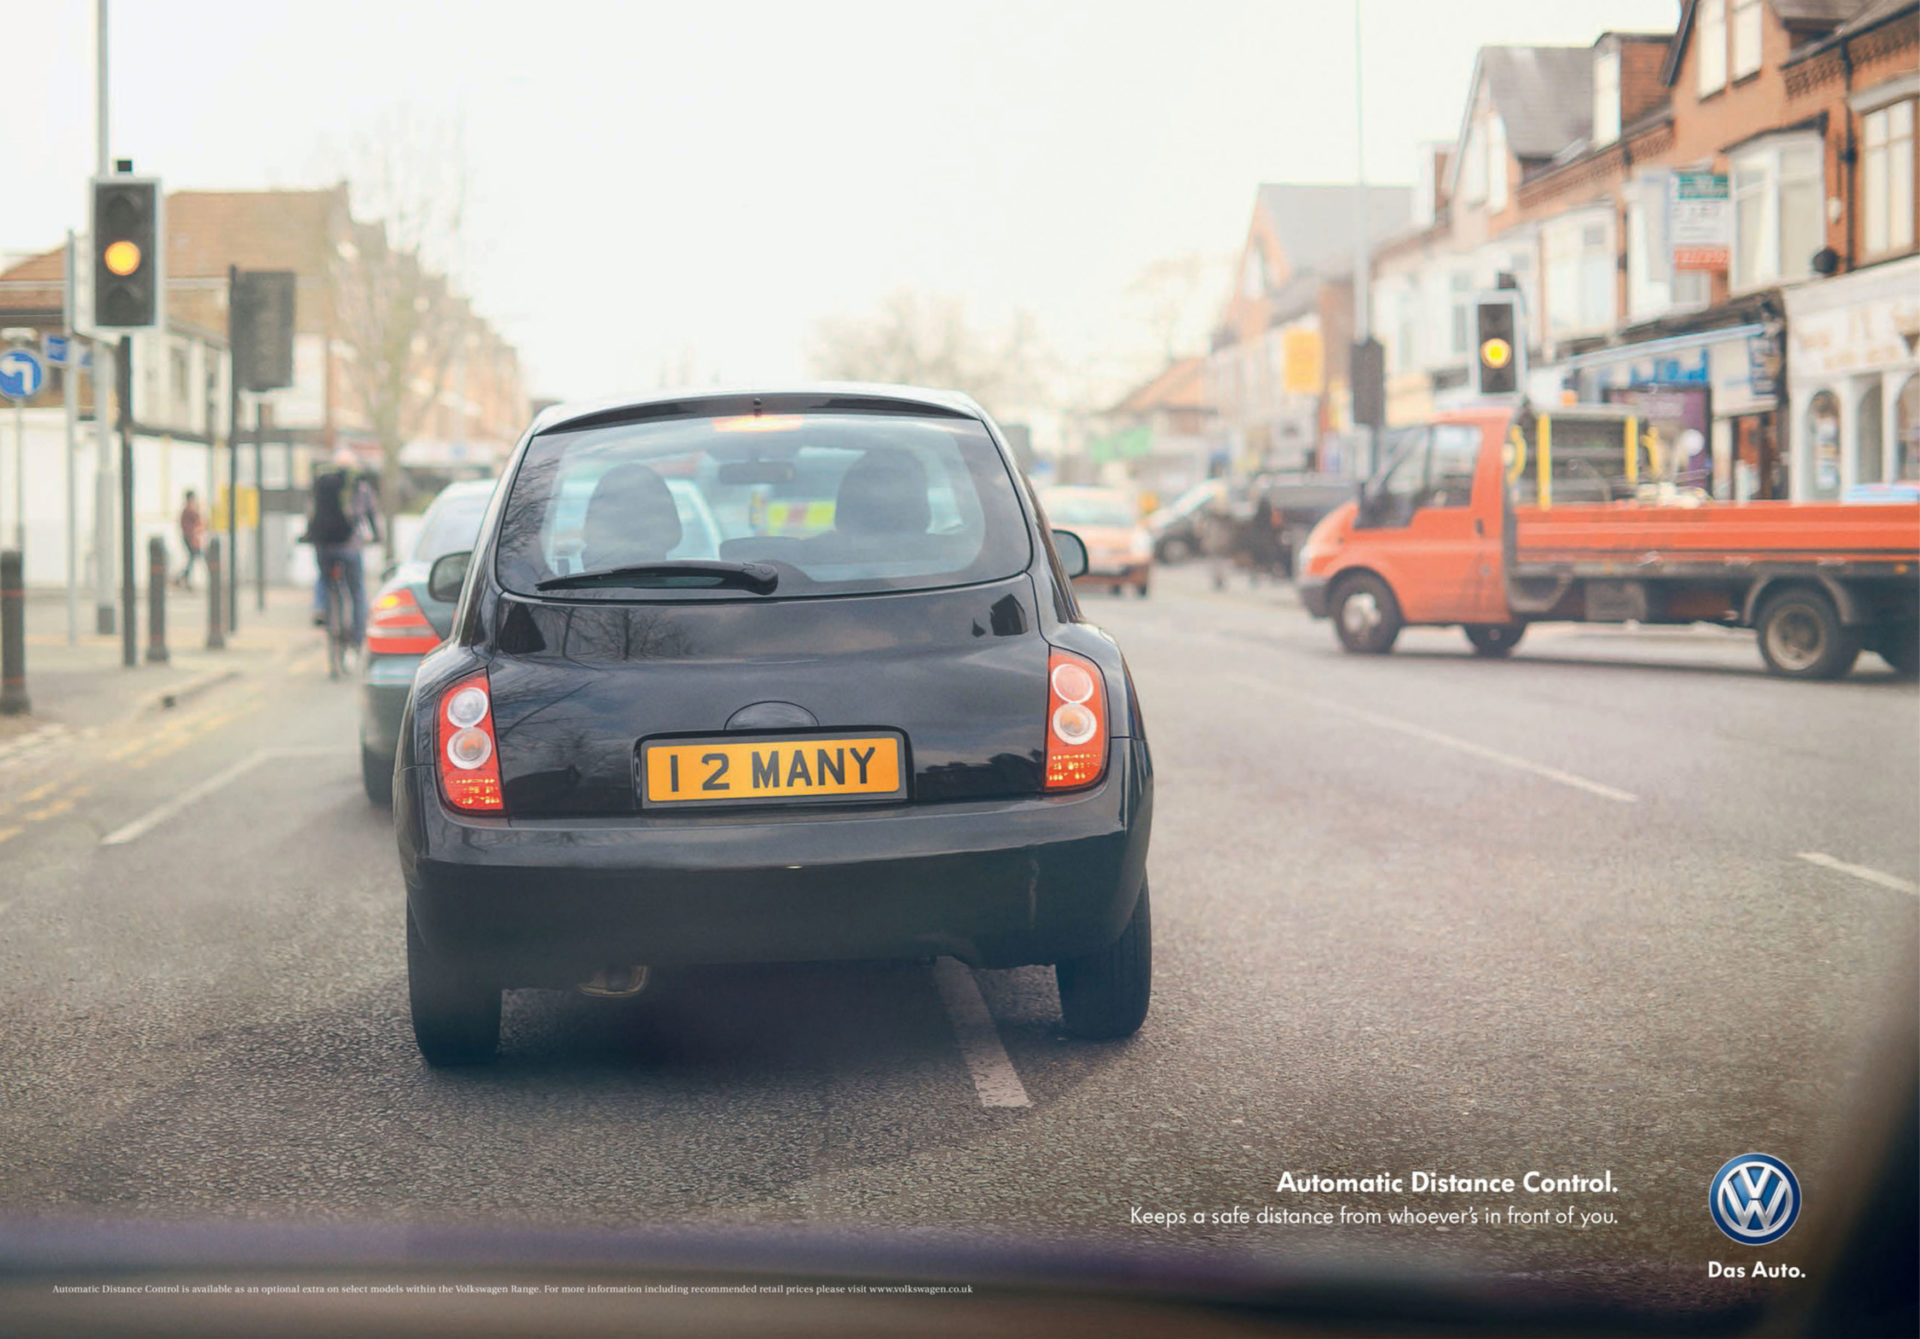 VW – black Volkswagen automatic distance control campaign Adam & Eve DDB – Shaw & Shaw Photography – Shaw and Shaw advertising photographers